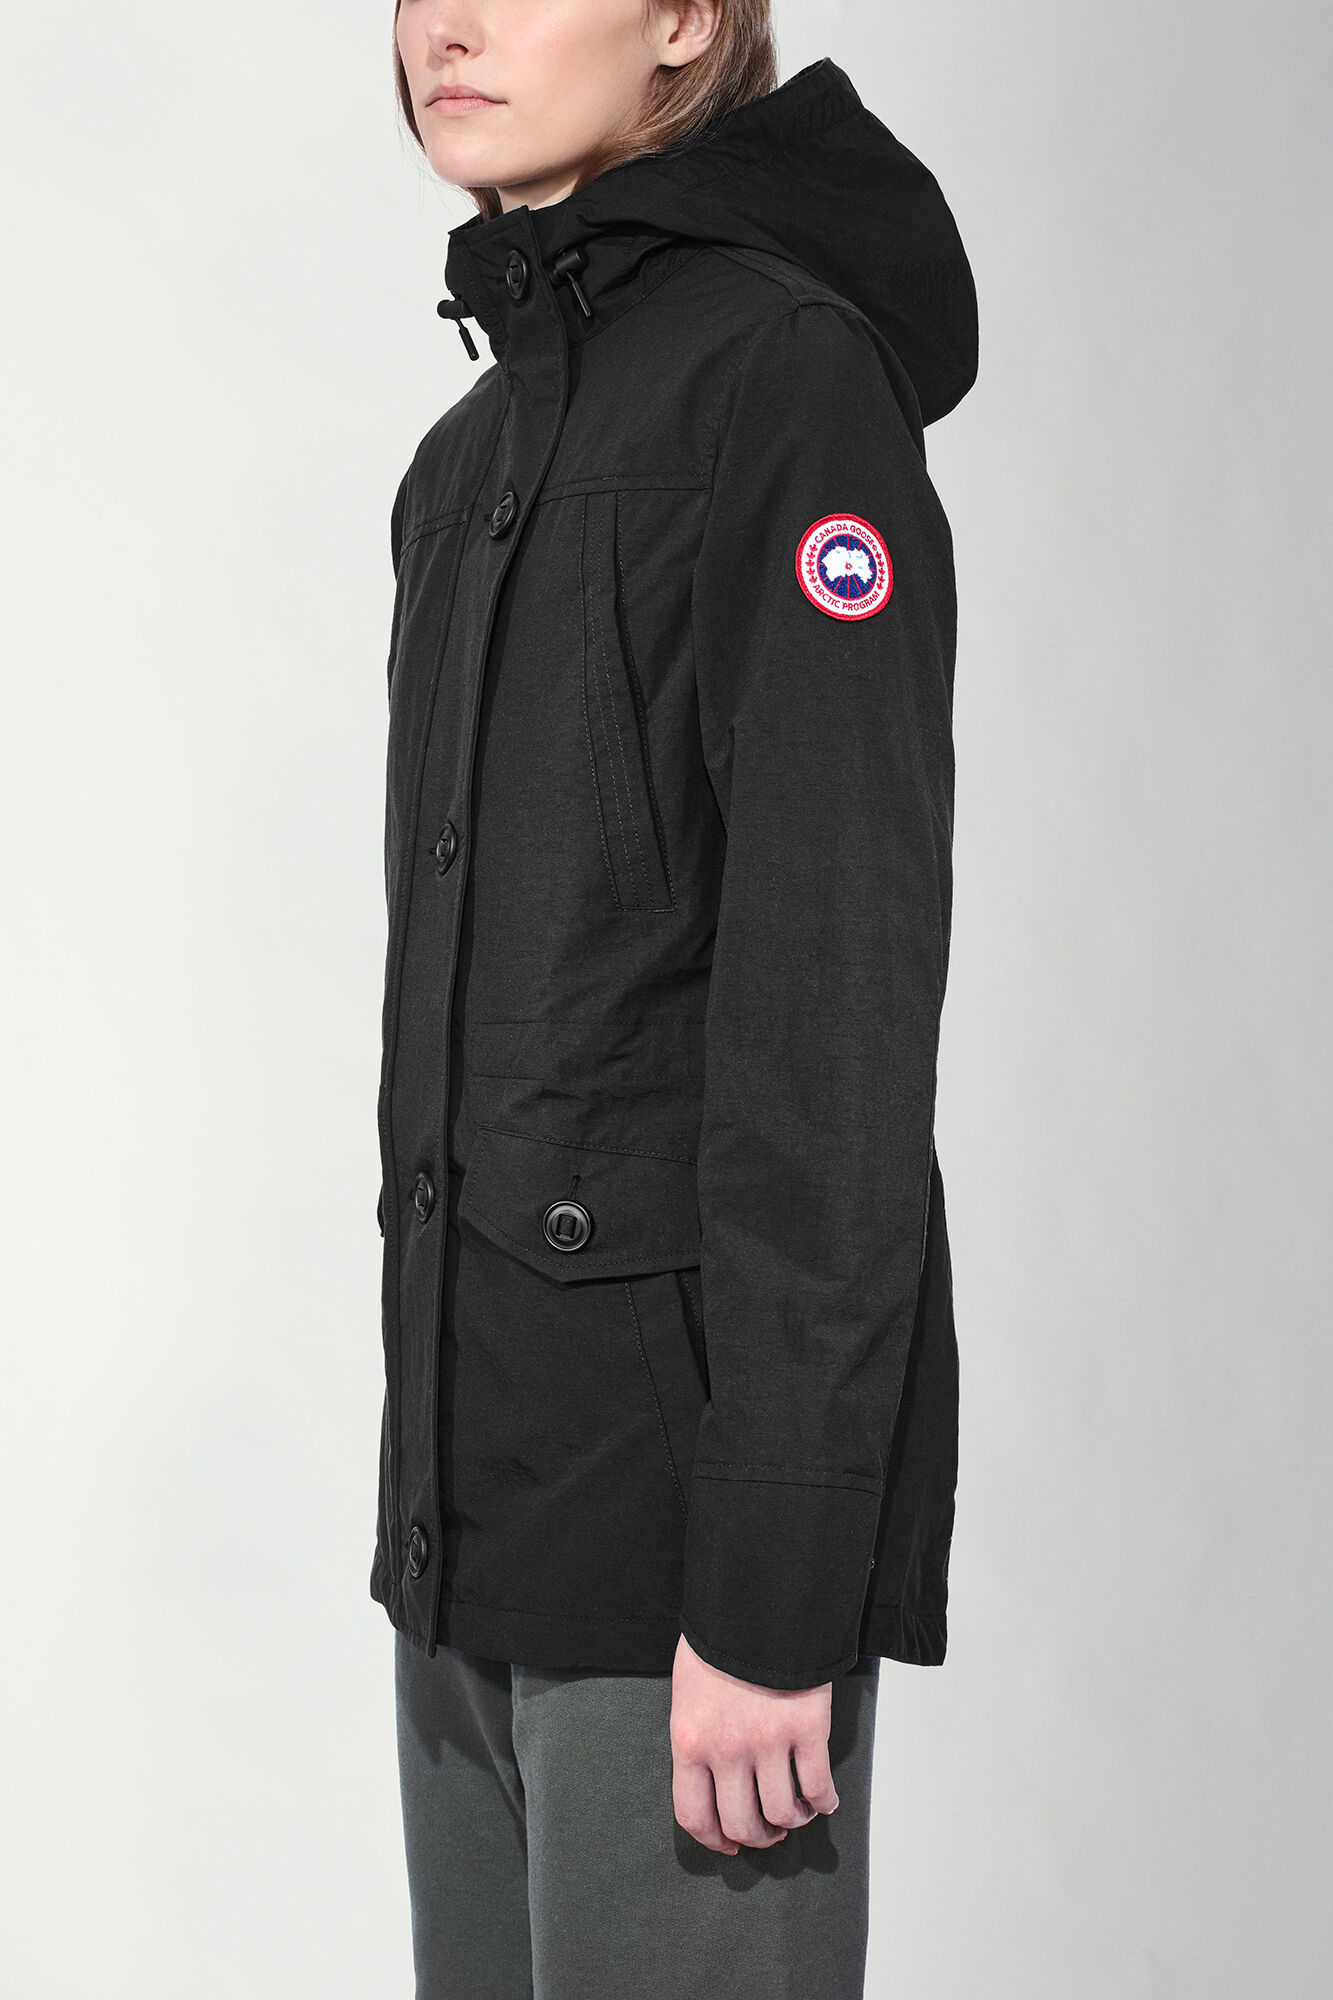 Canada Goose Reid jacket Cheap Price Wholesale Clearance Amazing Price Reliable Free Shipping Choice f3GIq1Y